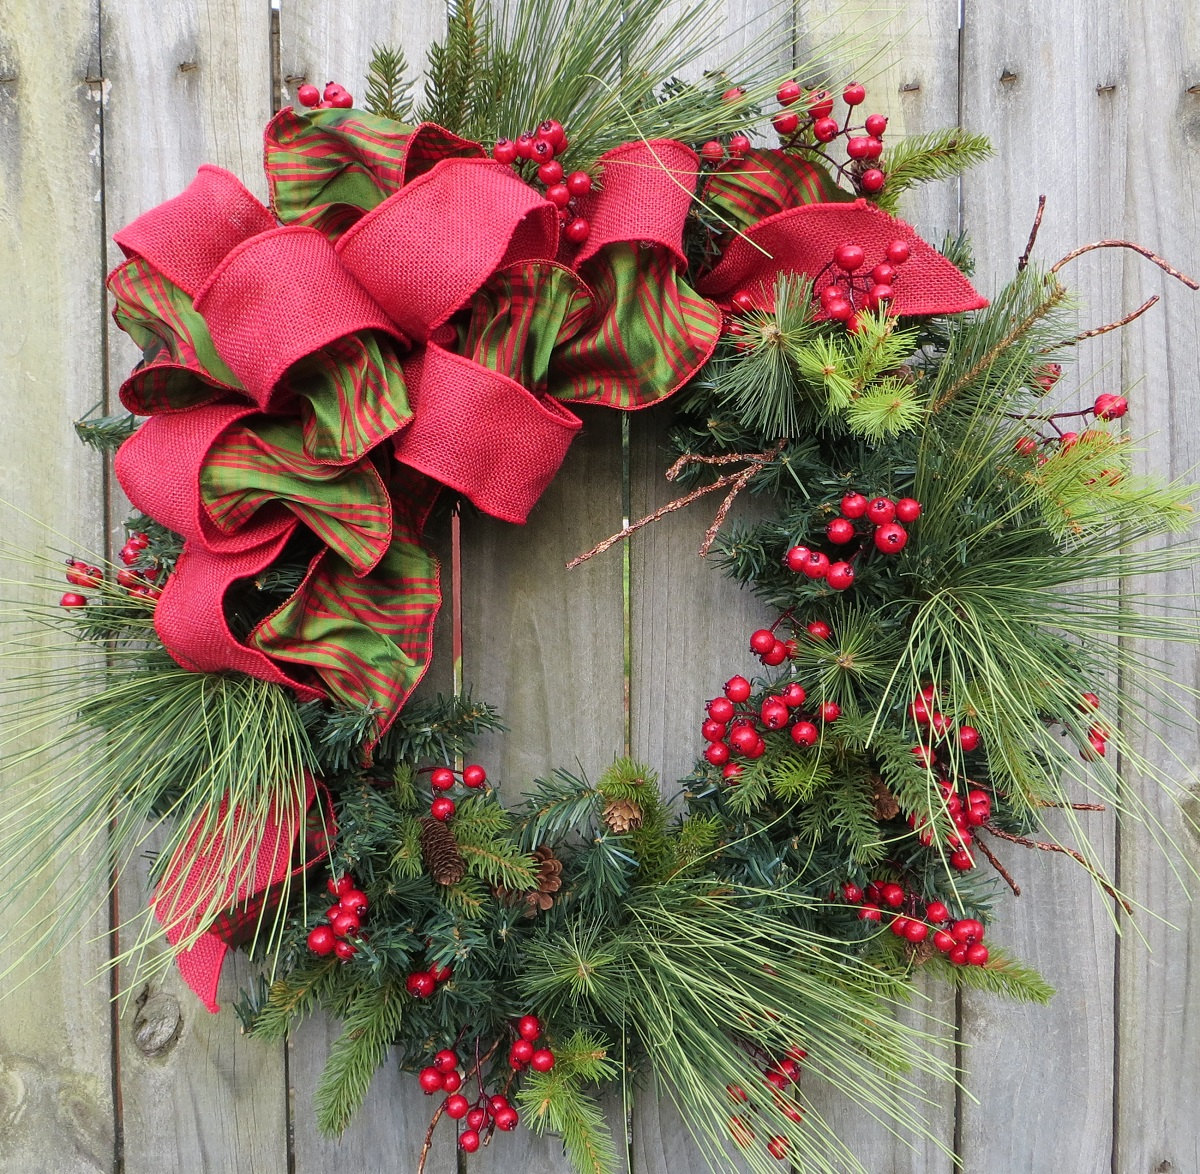 Christmas wreath decorating ideas Christmas wreath decorations